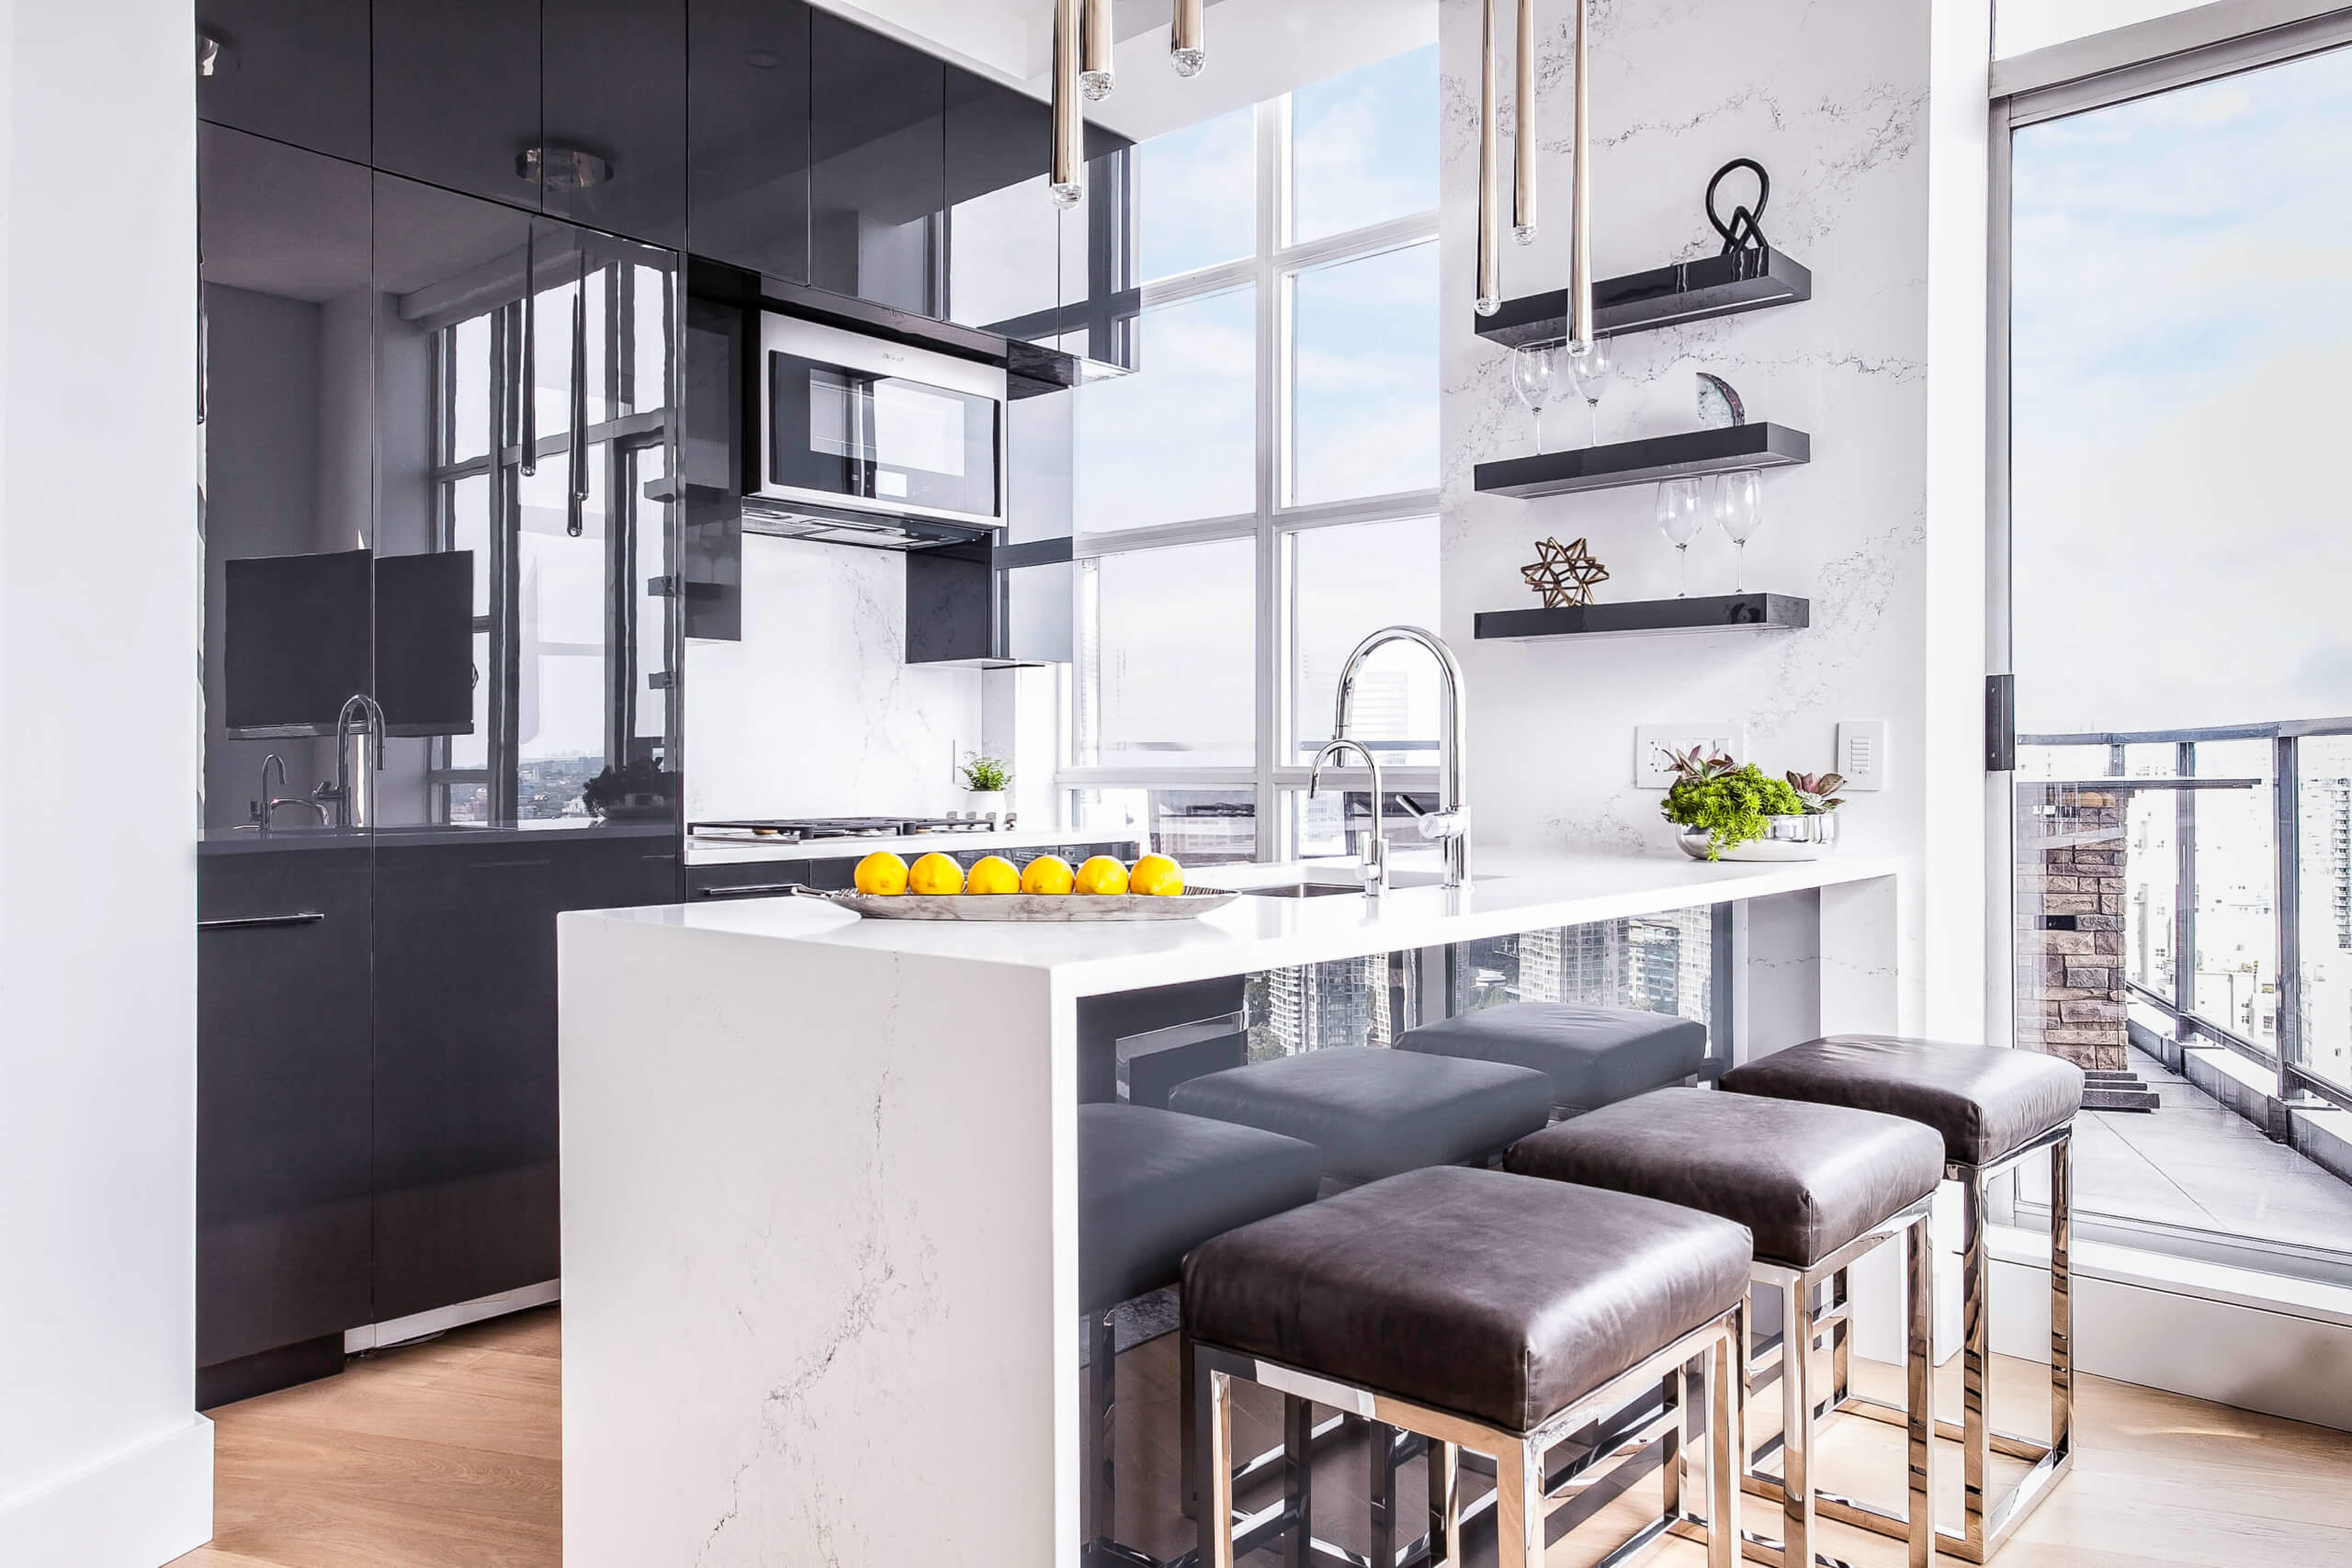 Modern flat panel kitchen with grey acrylic cabinets and white marble countertops.